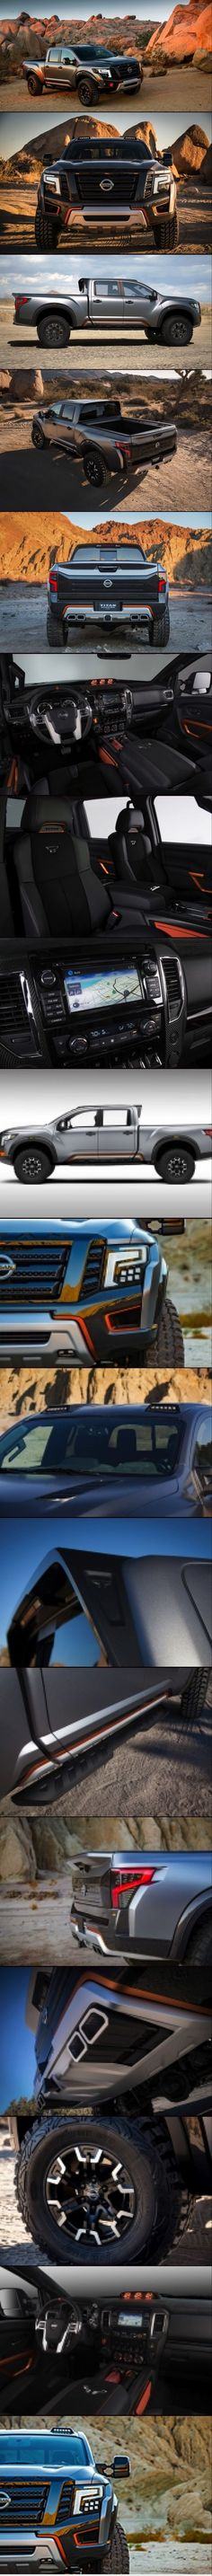 image detail for my lifted pro 4x pics inside nissan titan forum trucks pinterest. Black Bedroom Furniture Sets. Home Design Ideas